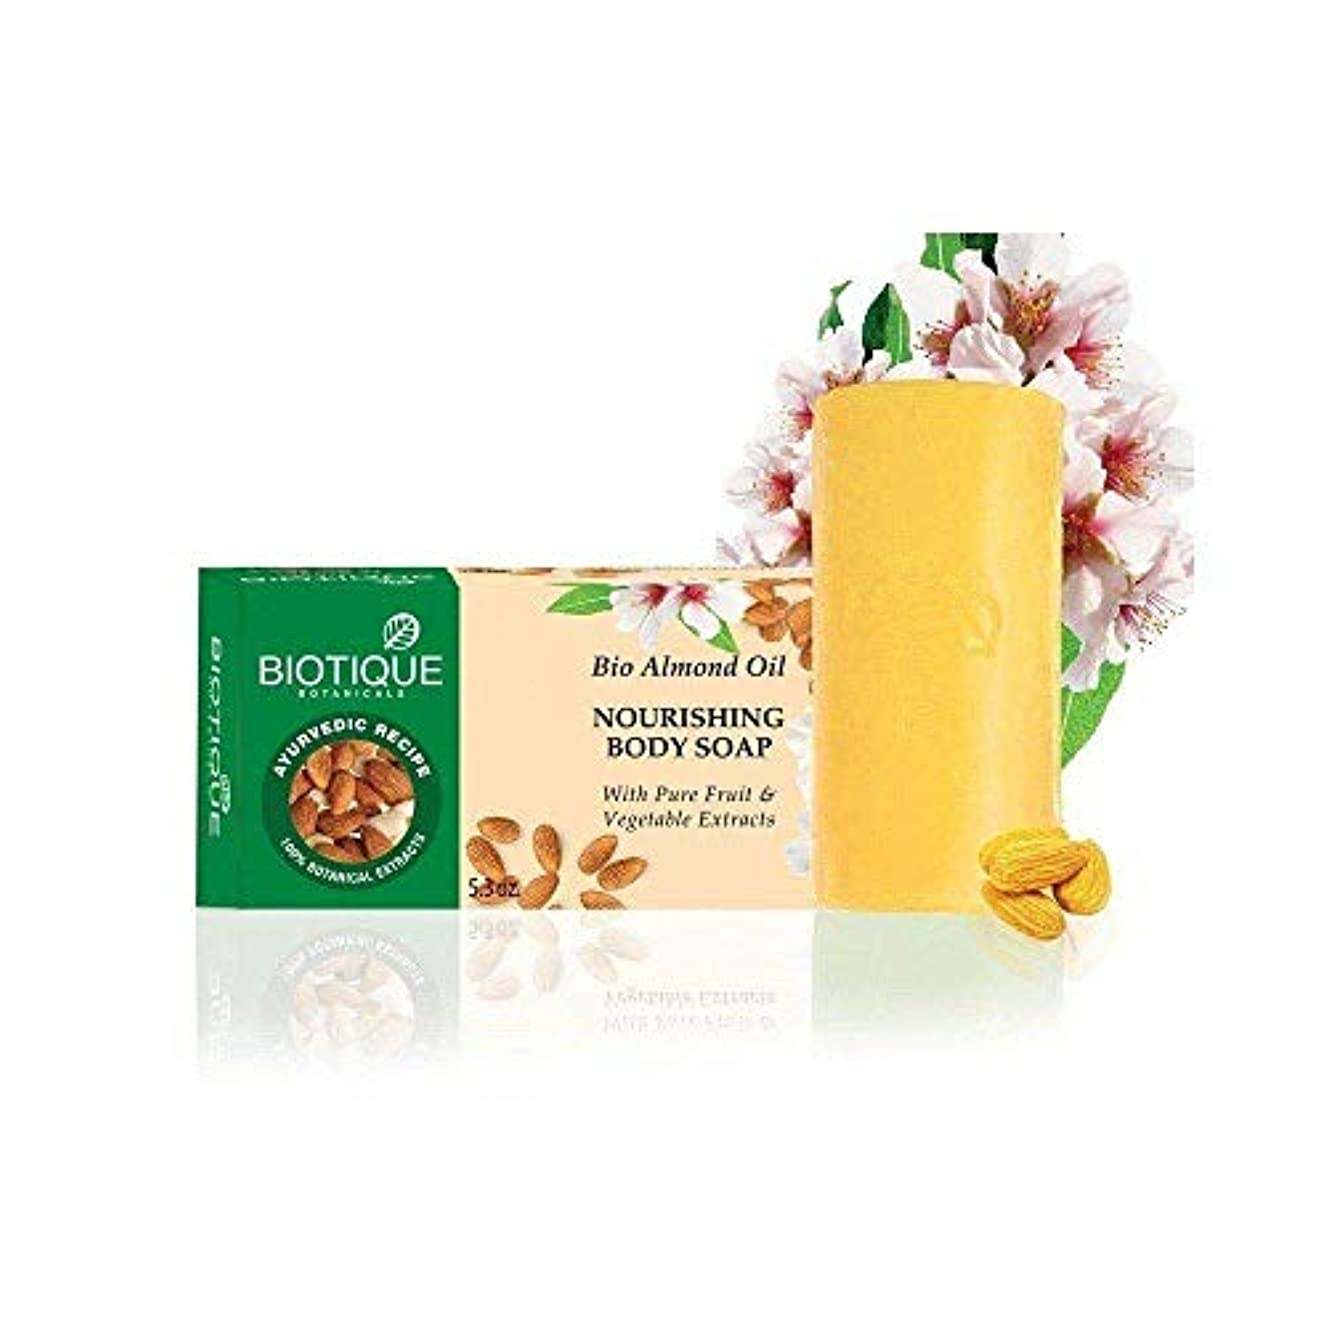 一最少真鍮Biotique Bio Almond Oil Nourishing Body Soap - 150g (Pack of 2) wash Impurities Biotique Bio Almond Oilナリッシングボディソープ...